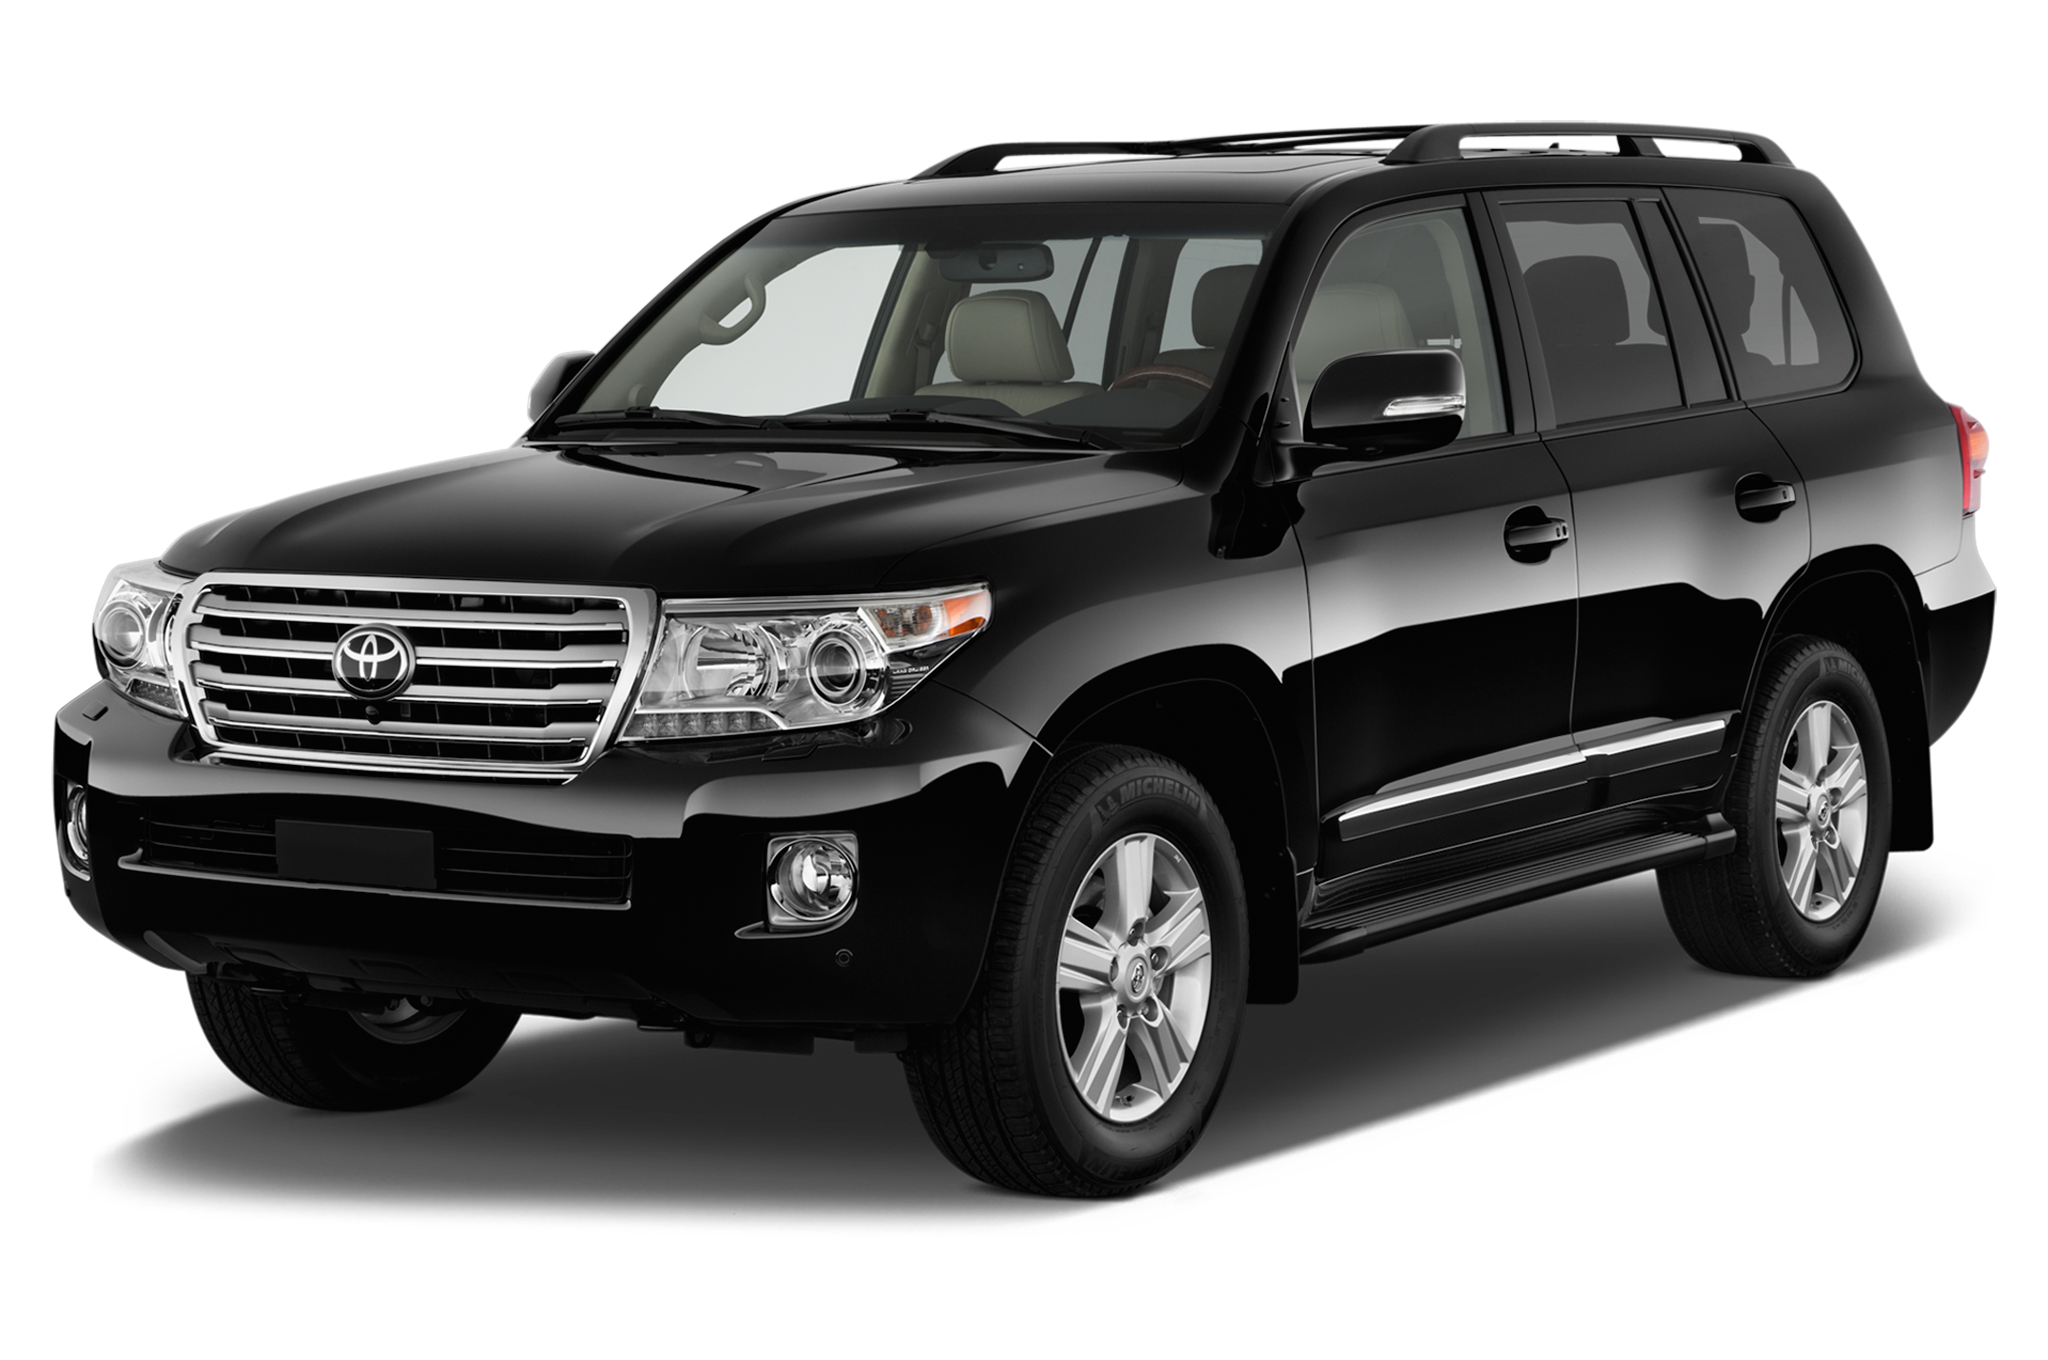 sedan crossover suv van truck toyota coupe hatchback cars of beautiful names